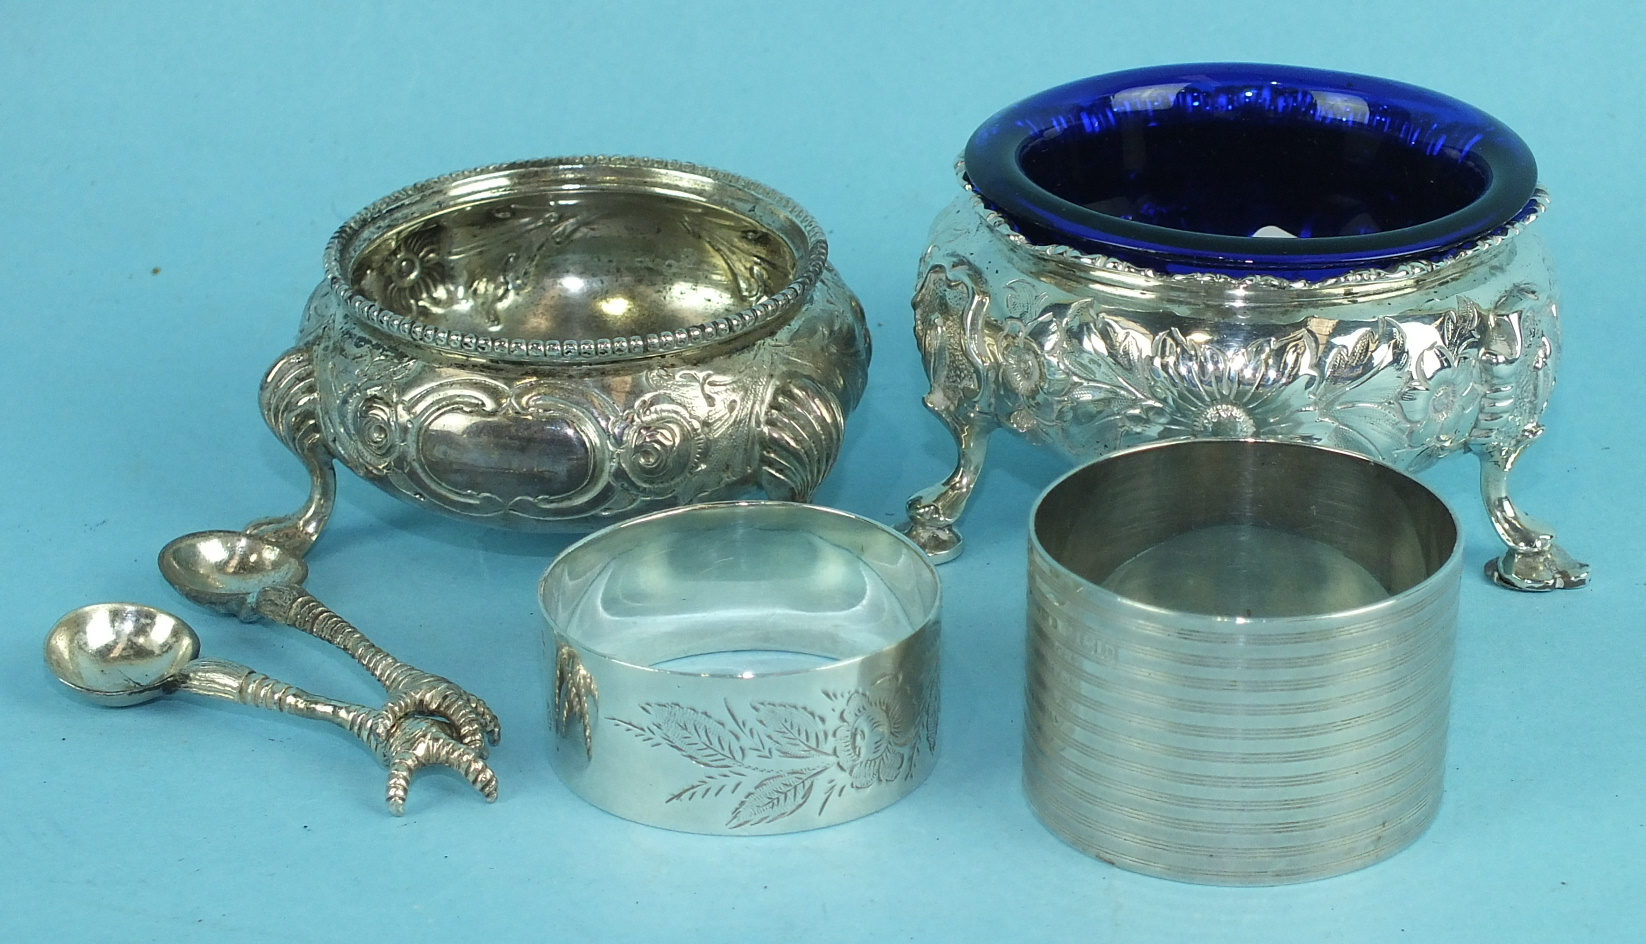 Lot 452 - A Victorian silver salt with embossed floral decoration, on three hooved feet, 8cm diameter.